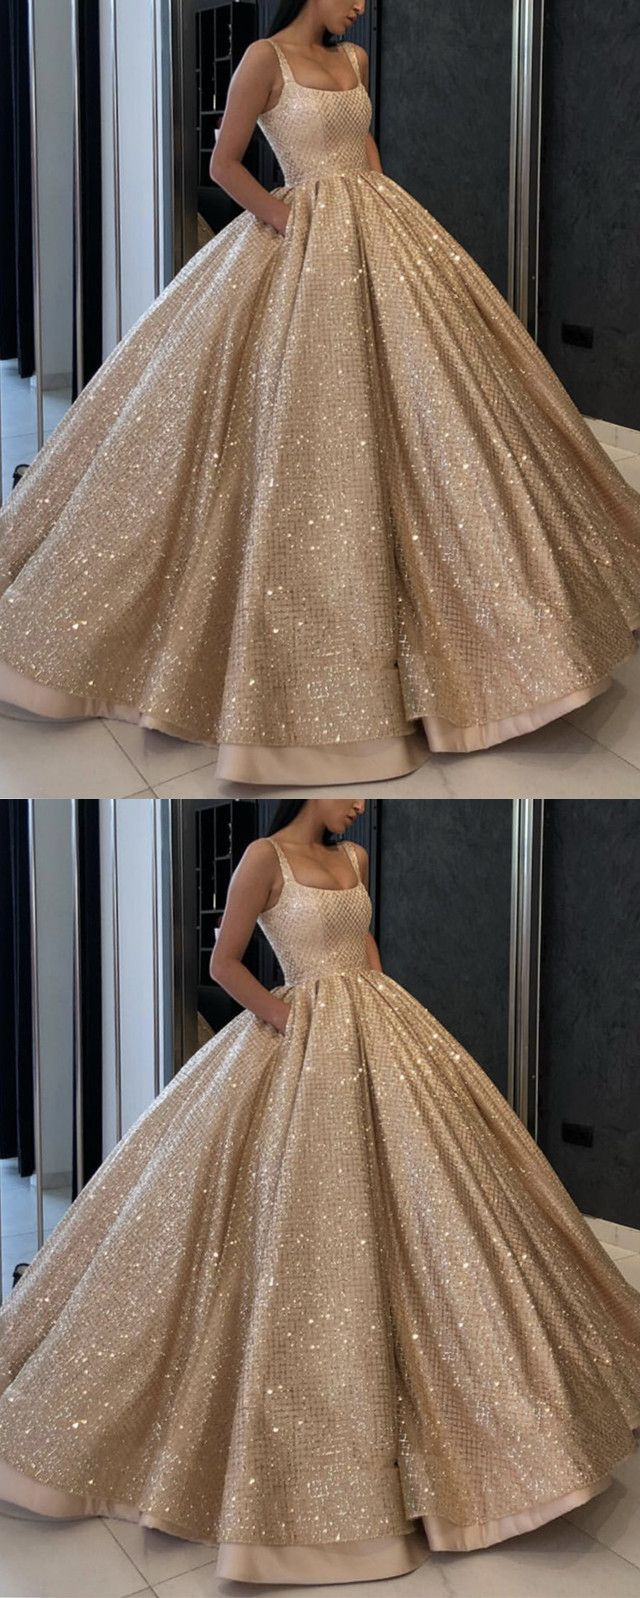 bling bling gold sequins satin ball gown wedding dresses